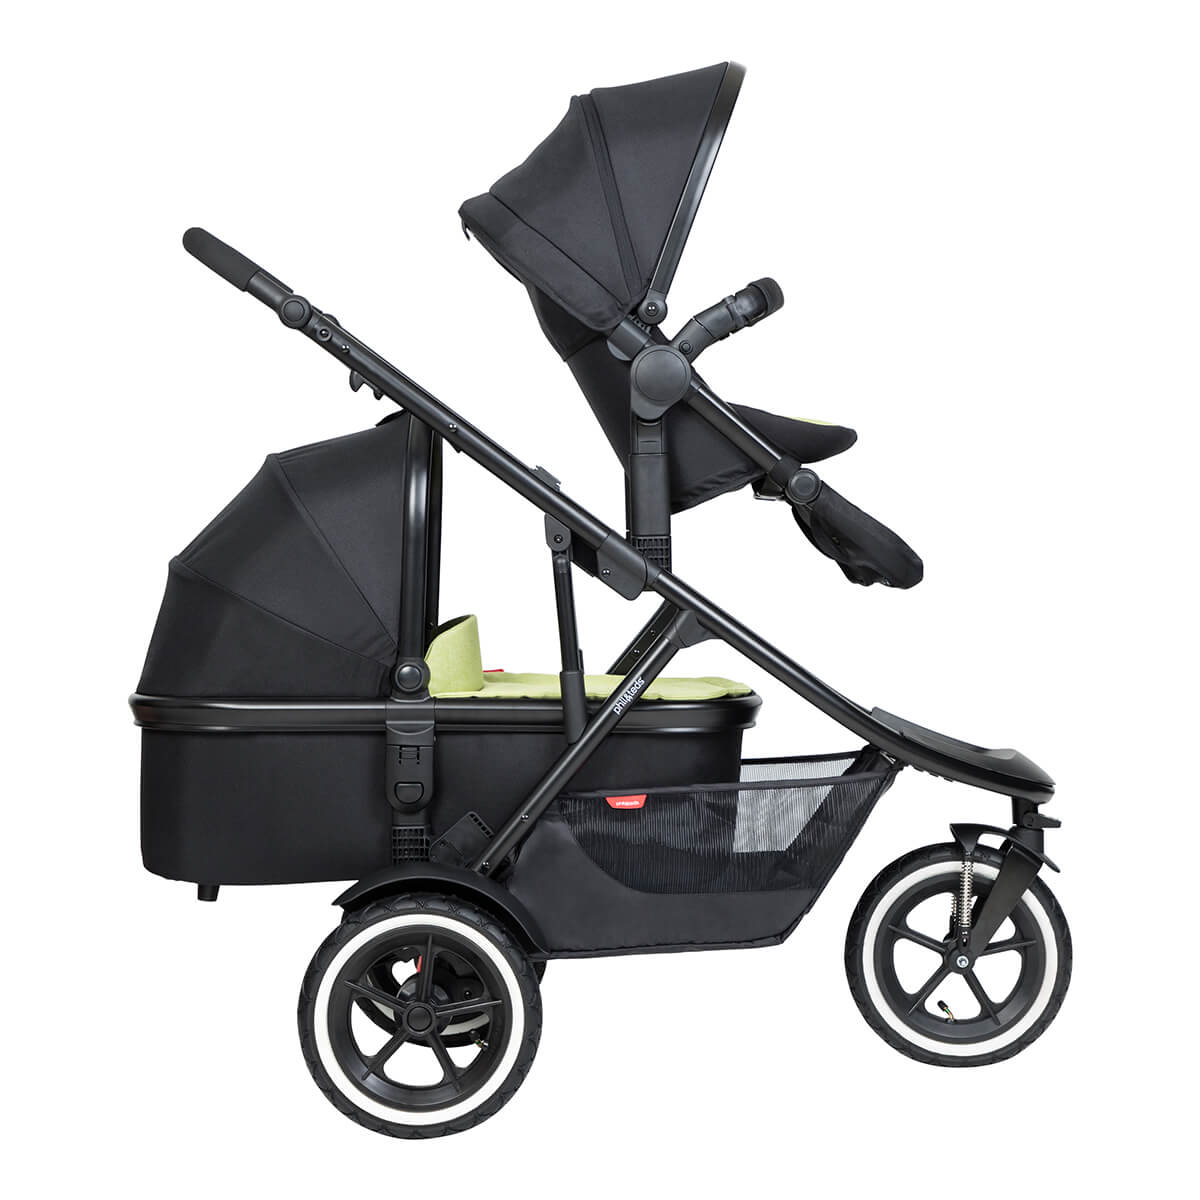 https://cdn.accentuate.io/4381202088013/19466204250306/philteds-sport-buggy-with-double-kit-extended-clip-and-snug-carrycot-side-view-v1626485341953.jpg?1200x1200